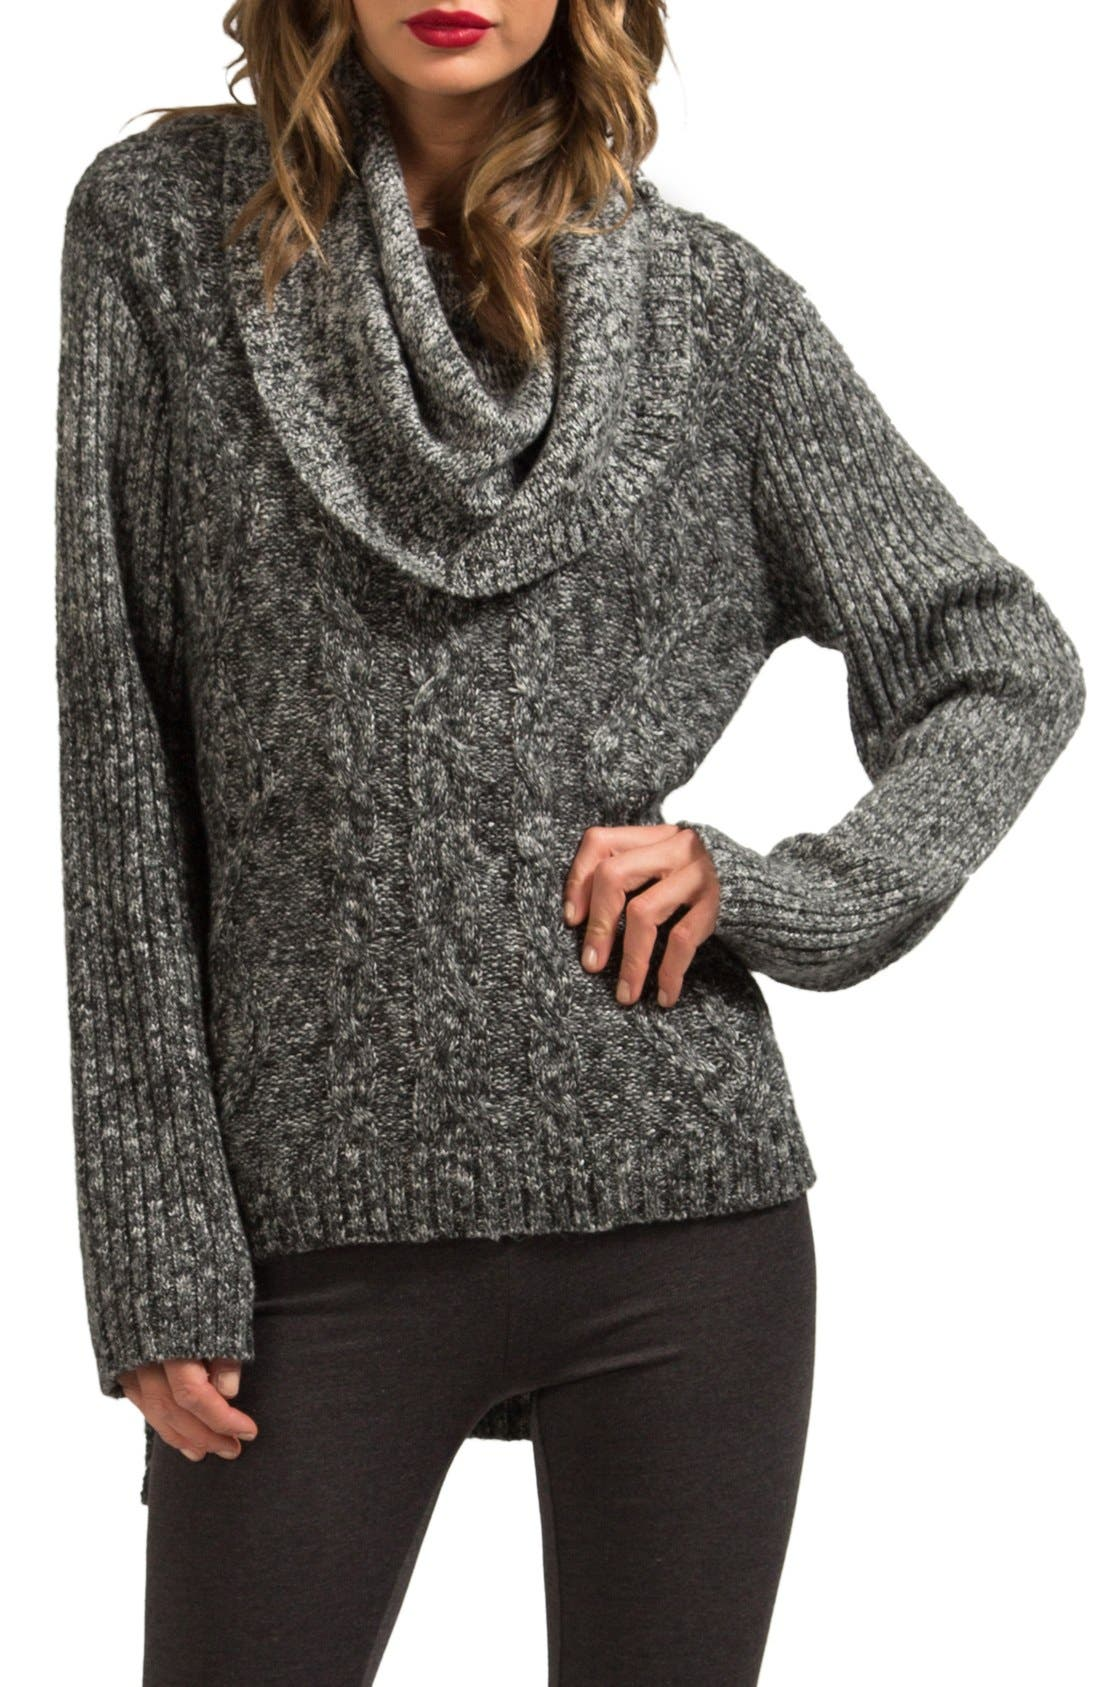 Main Image - LAmade Oversize Cowl Neck High/Low Sweater